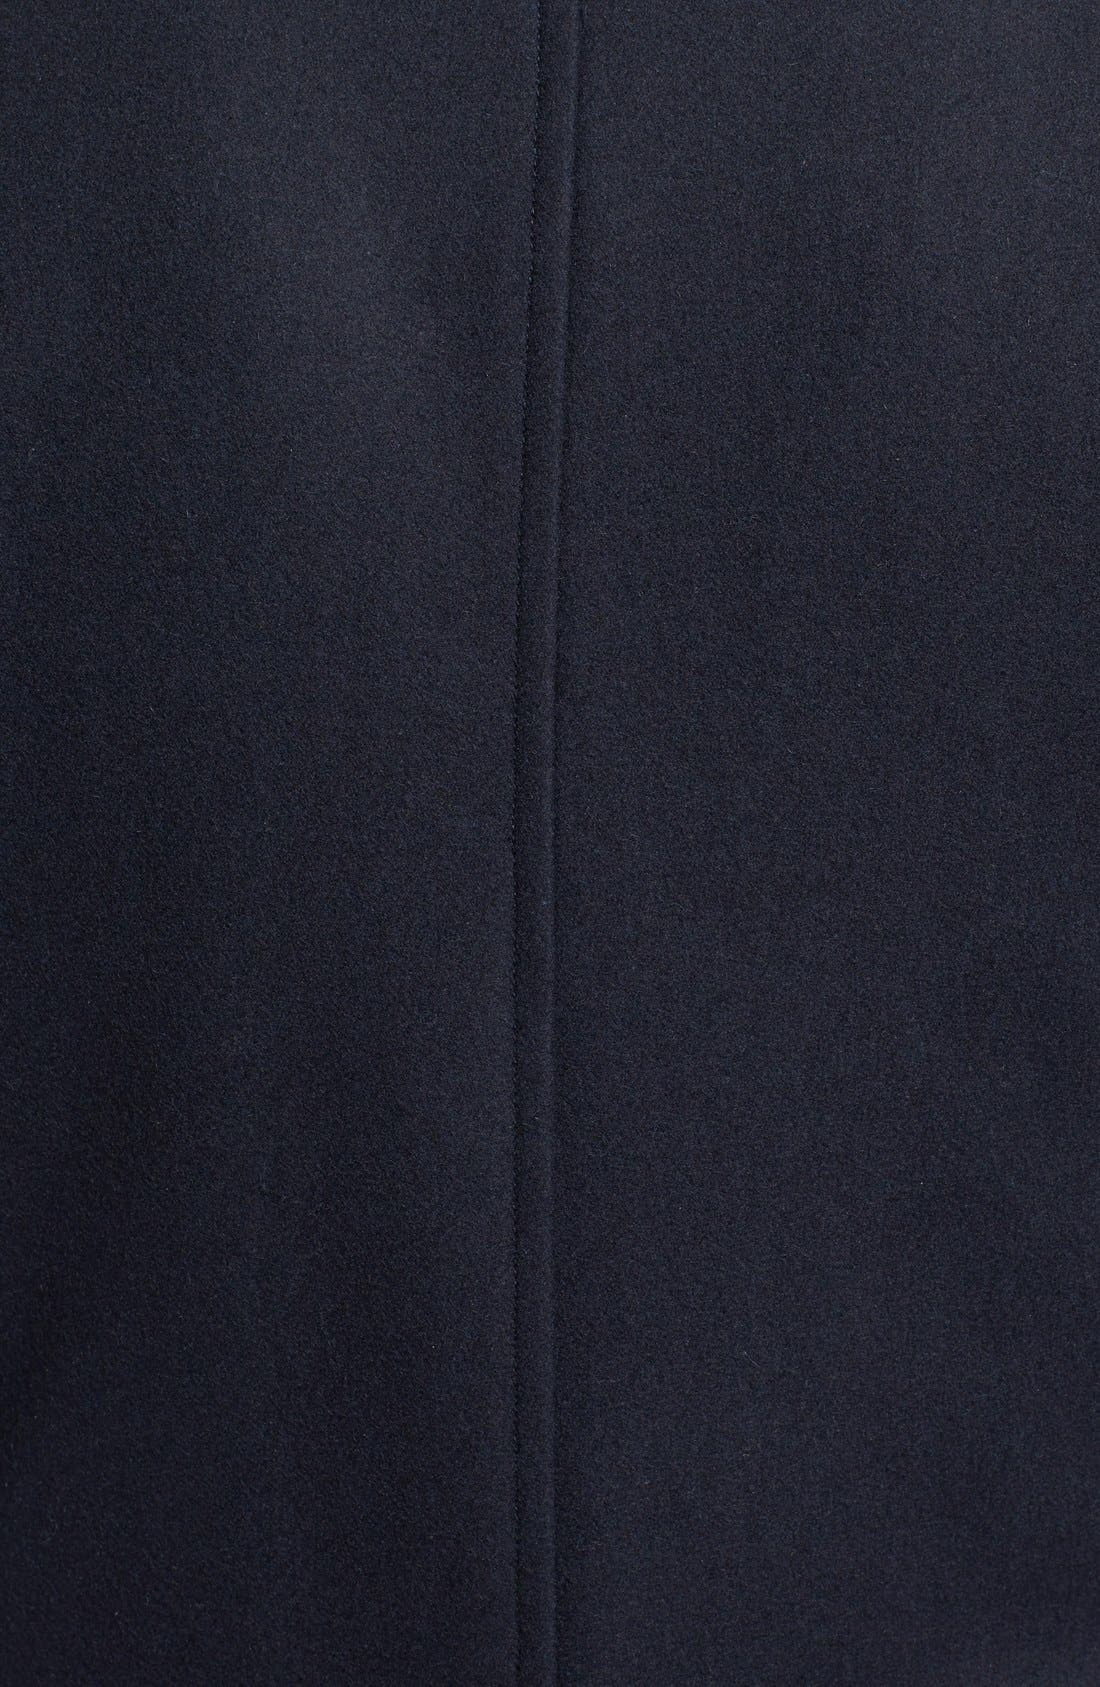 Wool Blend Double Breasted Peacoat,                             Alternate thumbnail 126, color,